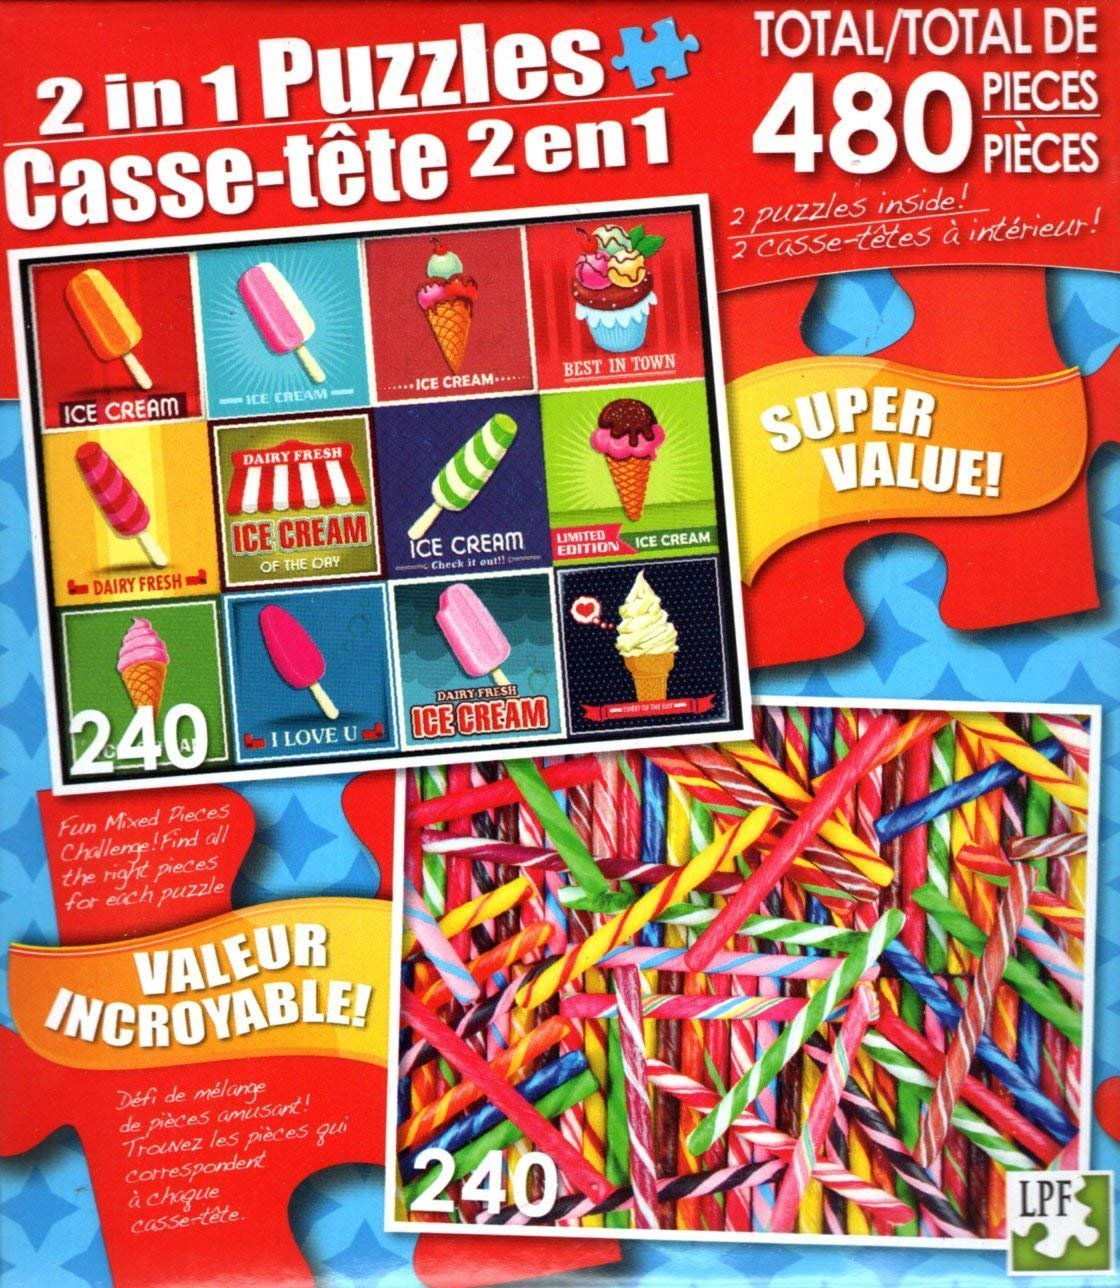 LPF Vintage Ice Cream - Colorful Candy Sticks - Total 480 Piece 2 in 1 Jigsaw Puzzles